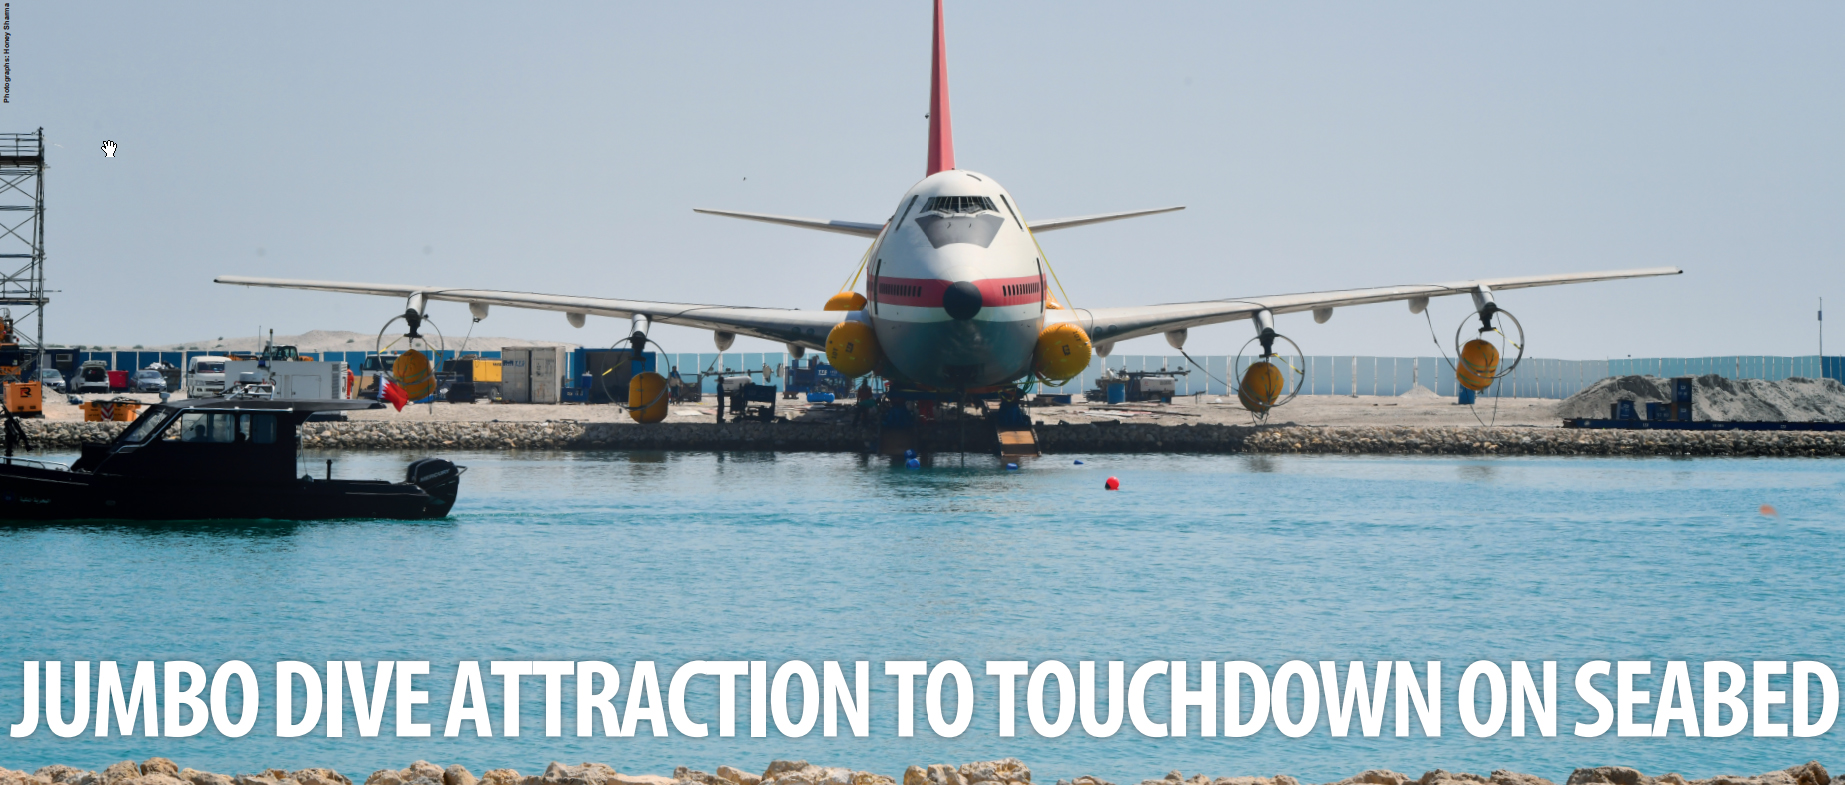 Gulf Weekly JUMBO DIVE ATTRACTION TO TOUCHDOWN ON SEABED